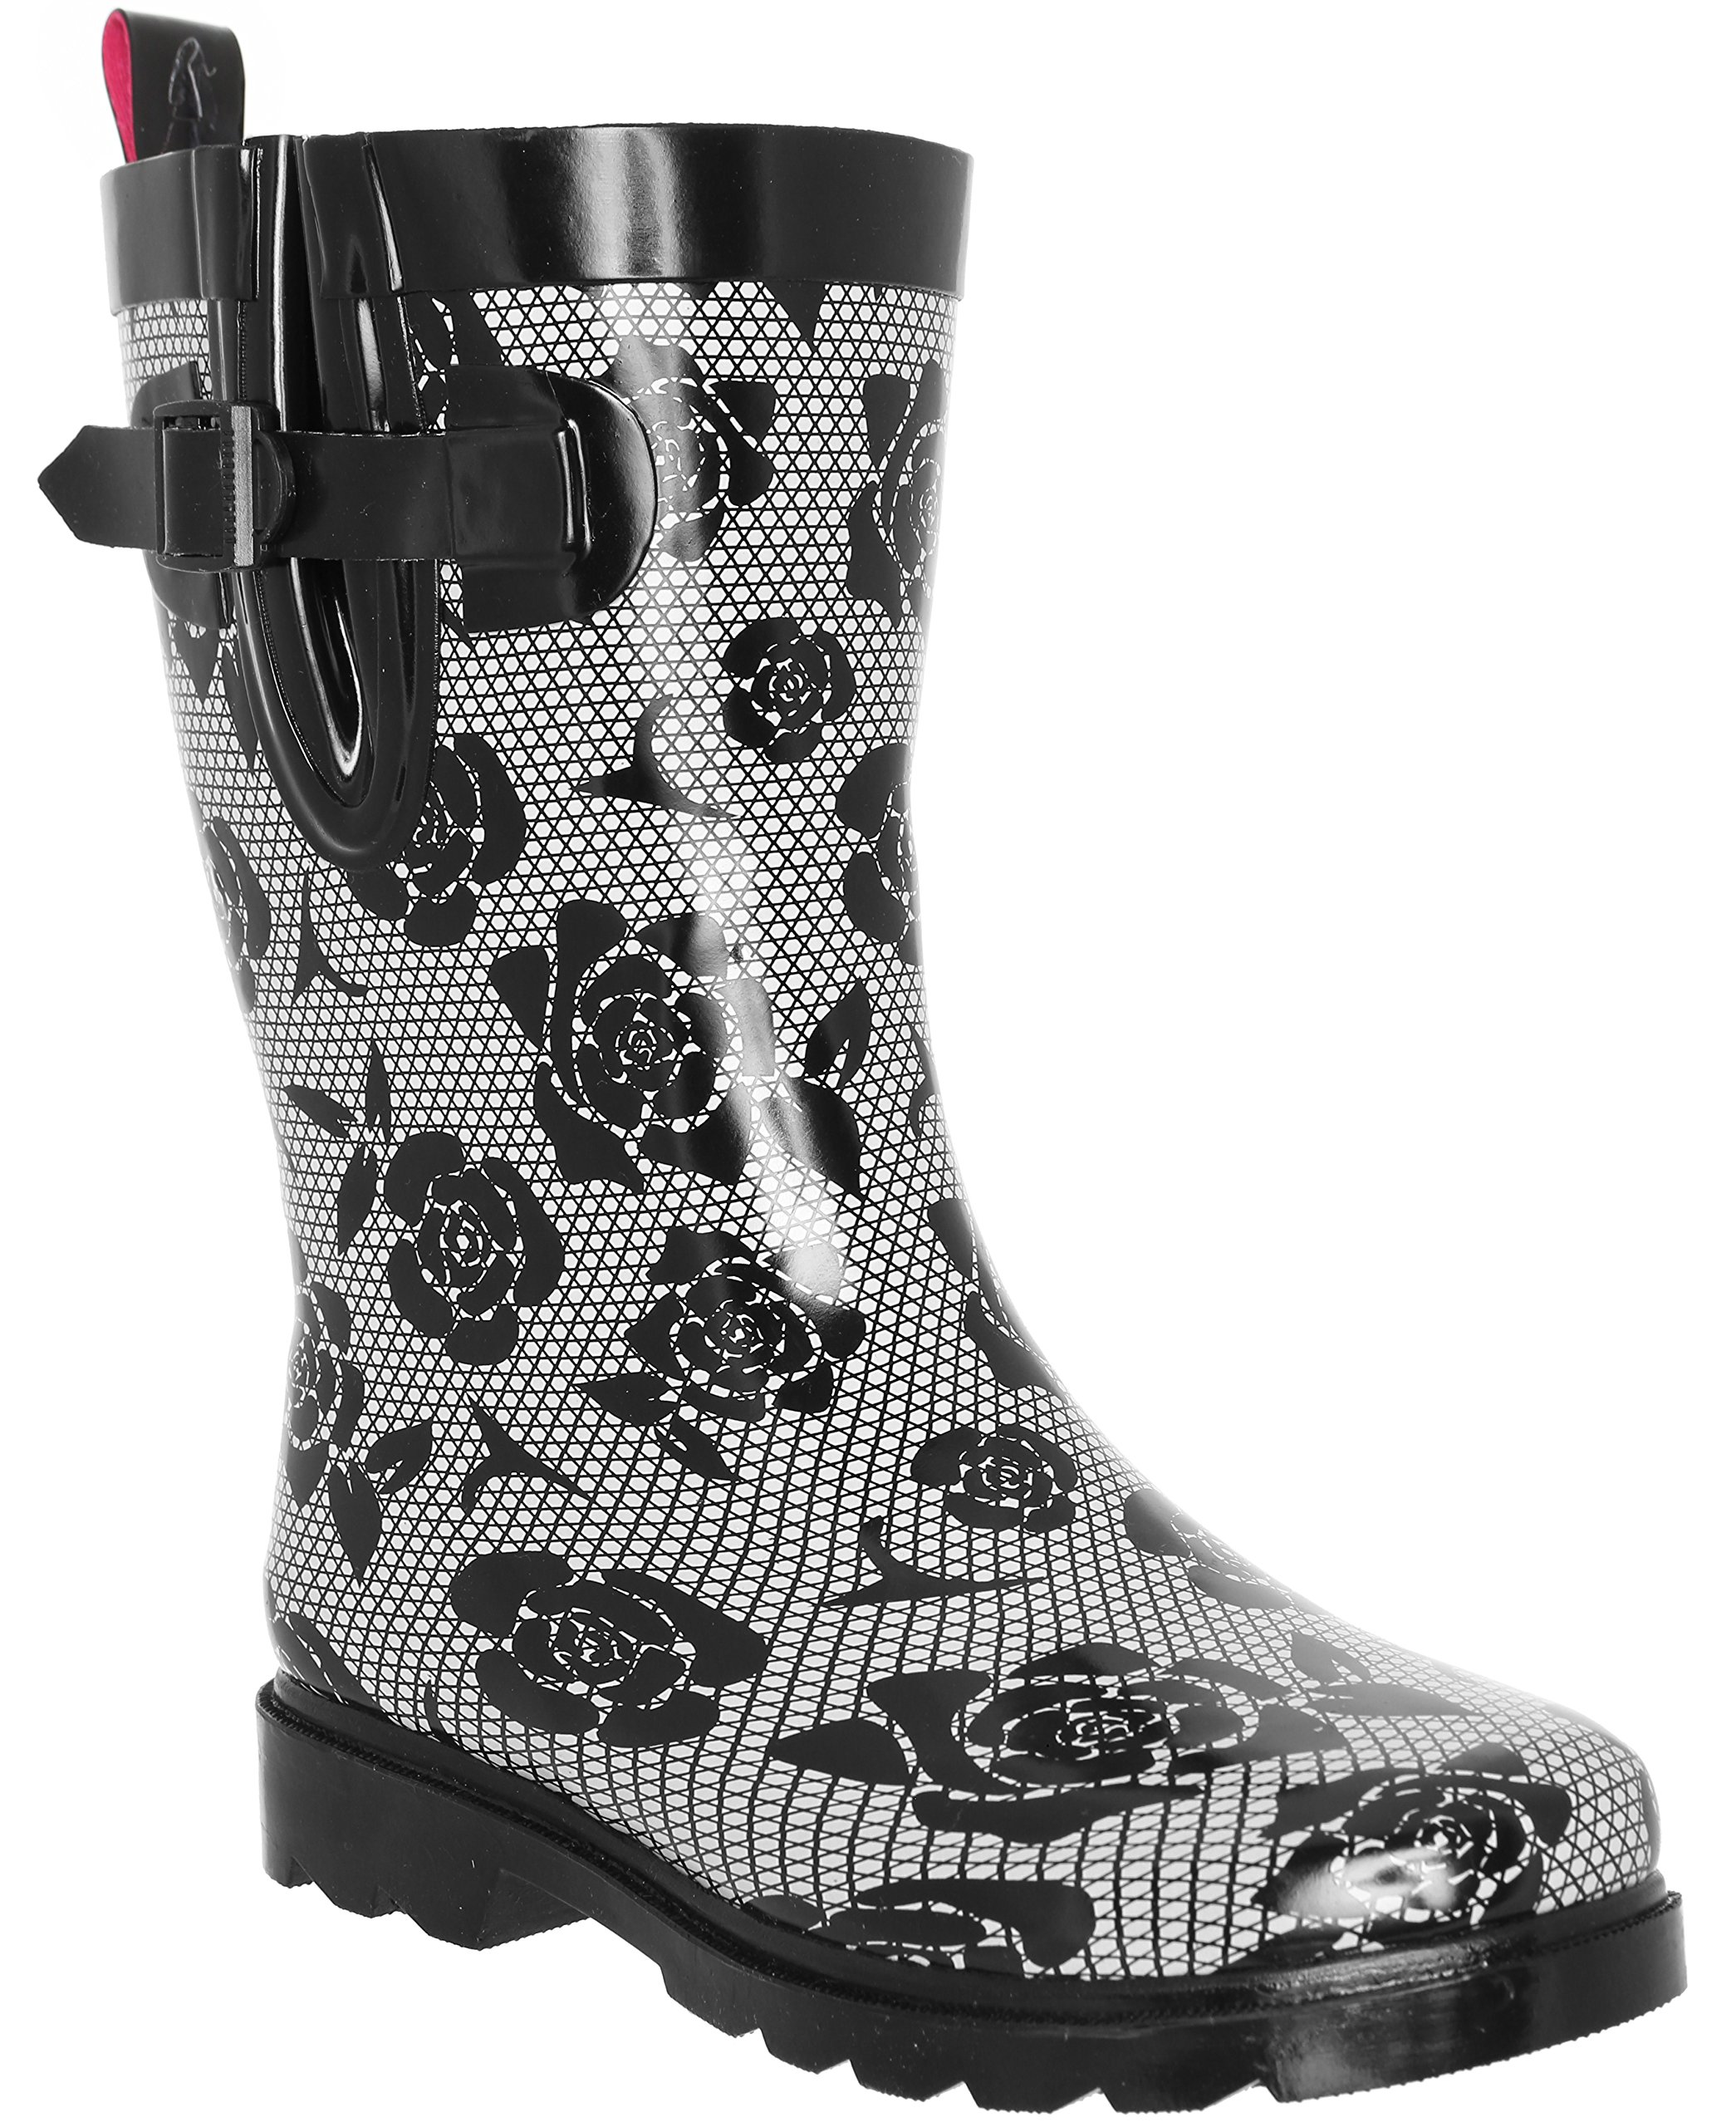 Capelli New York Ladies Lace and Roses Printed Mid- Calf Rain Boot Black Combo 8 by Capelli New York (Image #1)